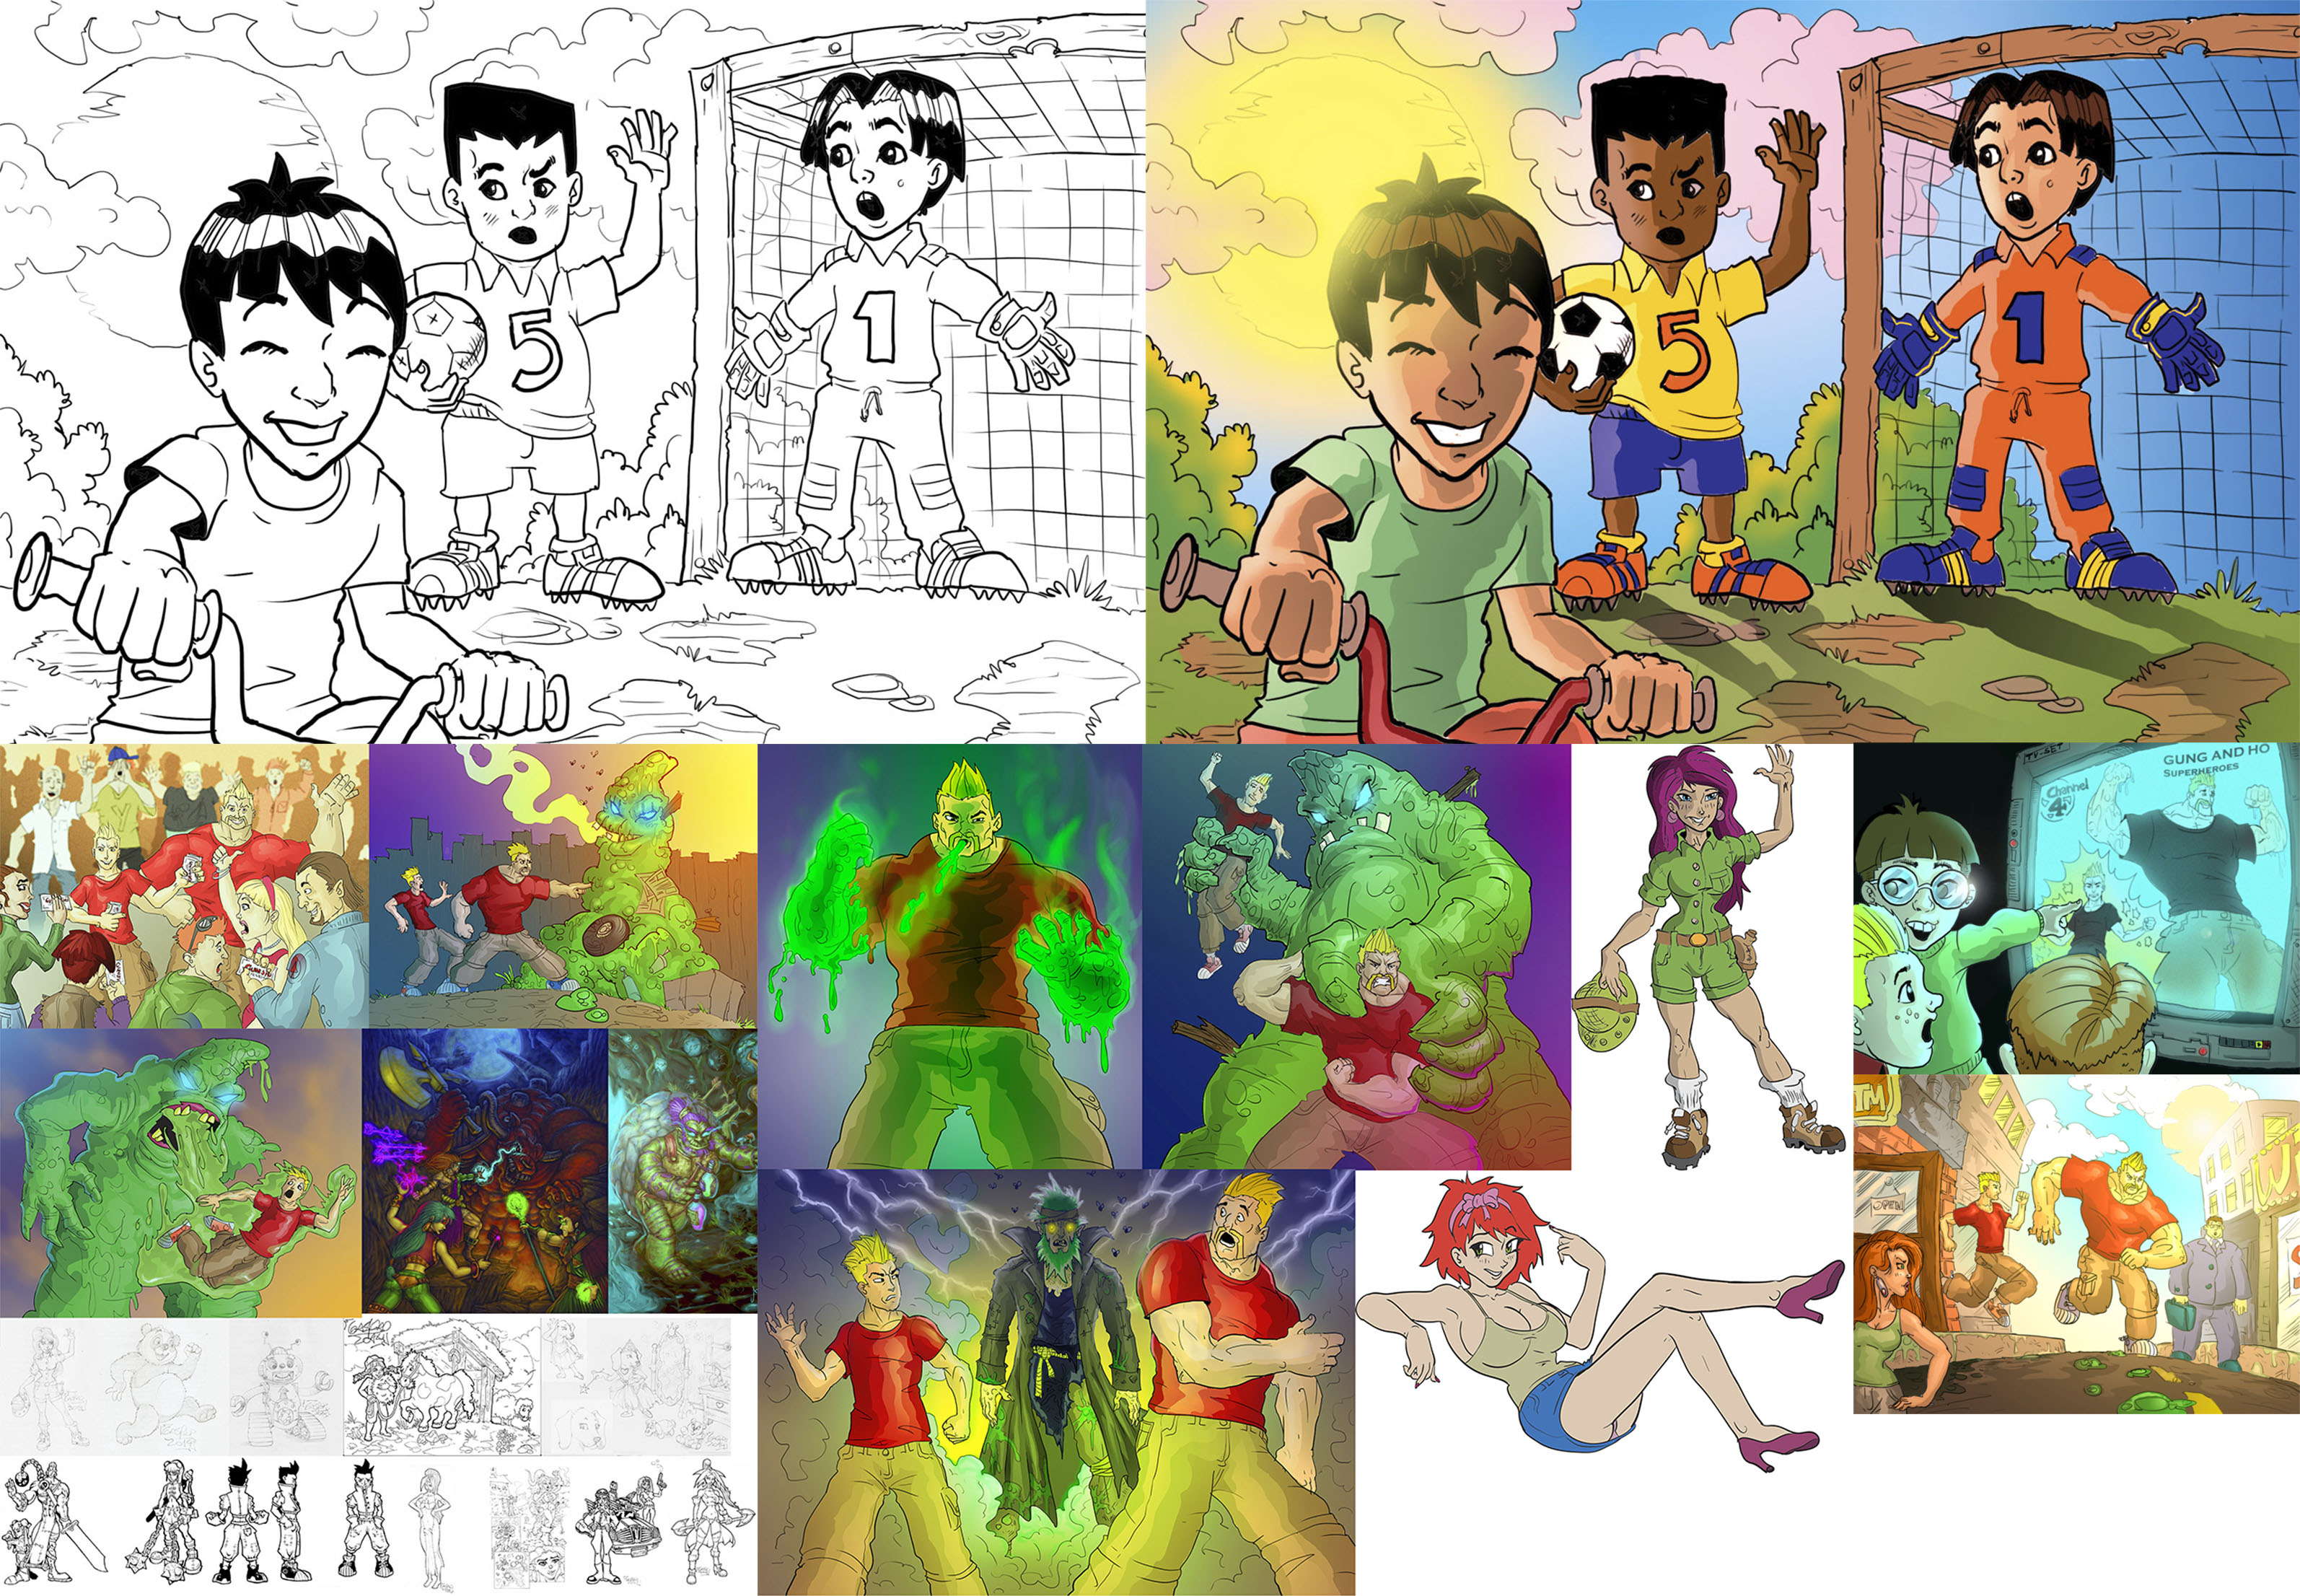 draw a children illustration fully colored